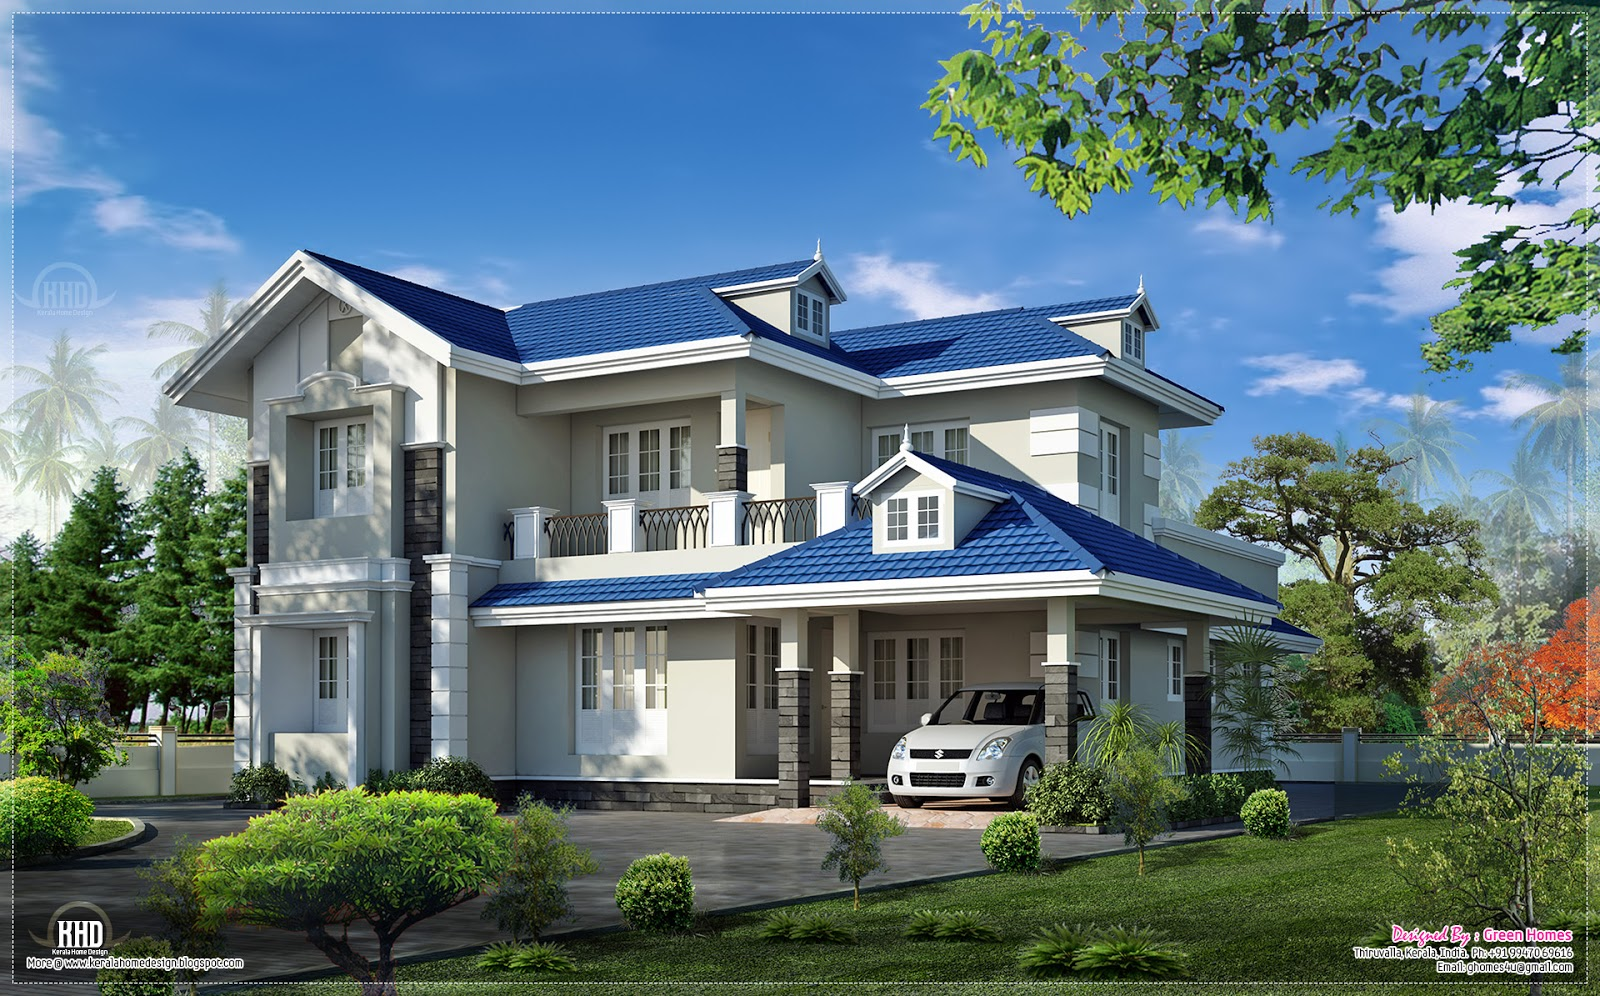 beautiful 4 bedroom villa exterior kerala home design On beautiful villas images